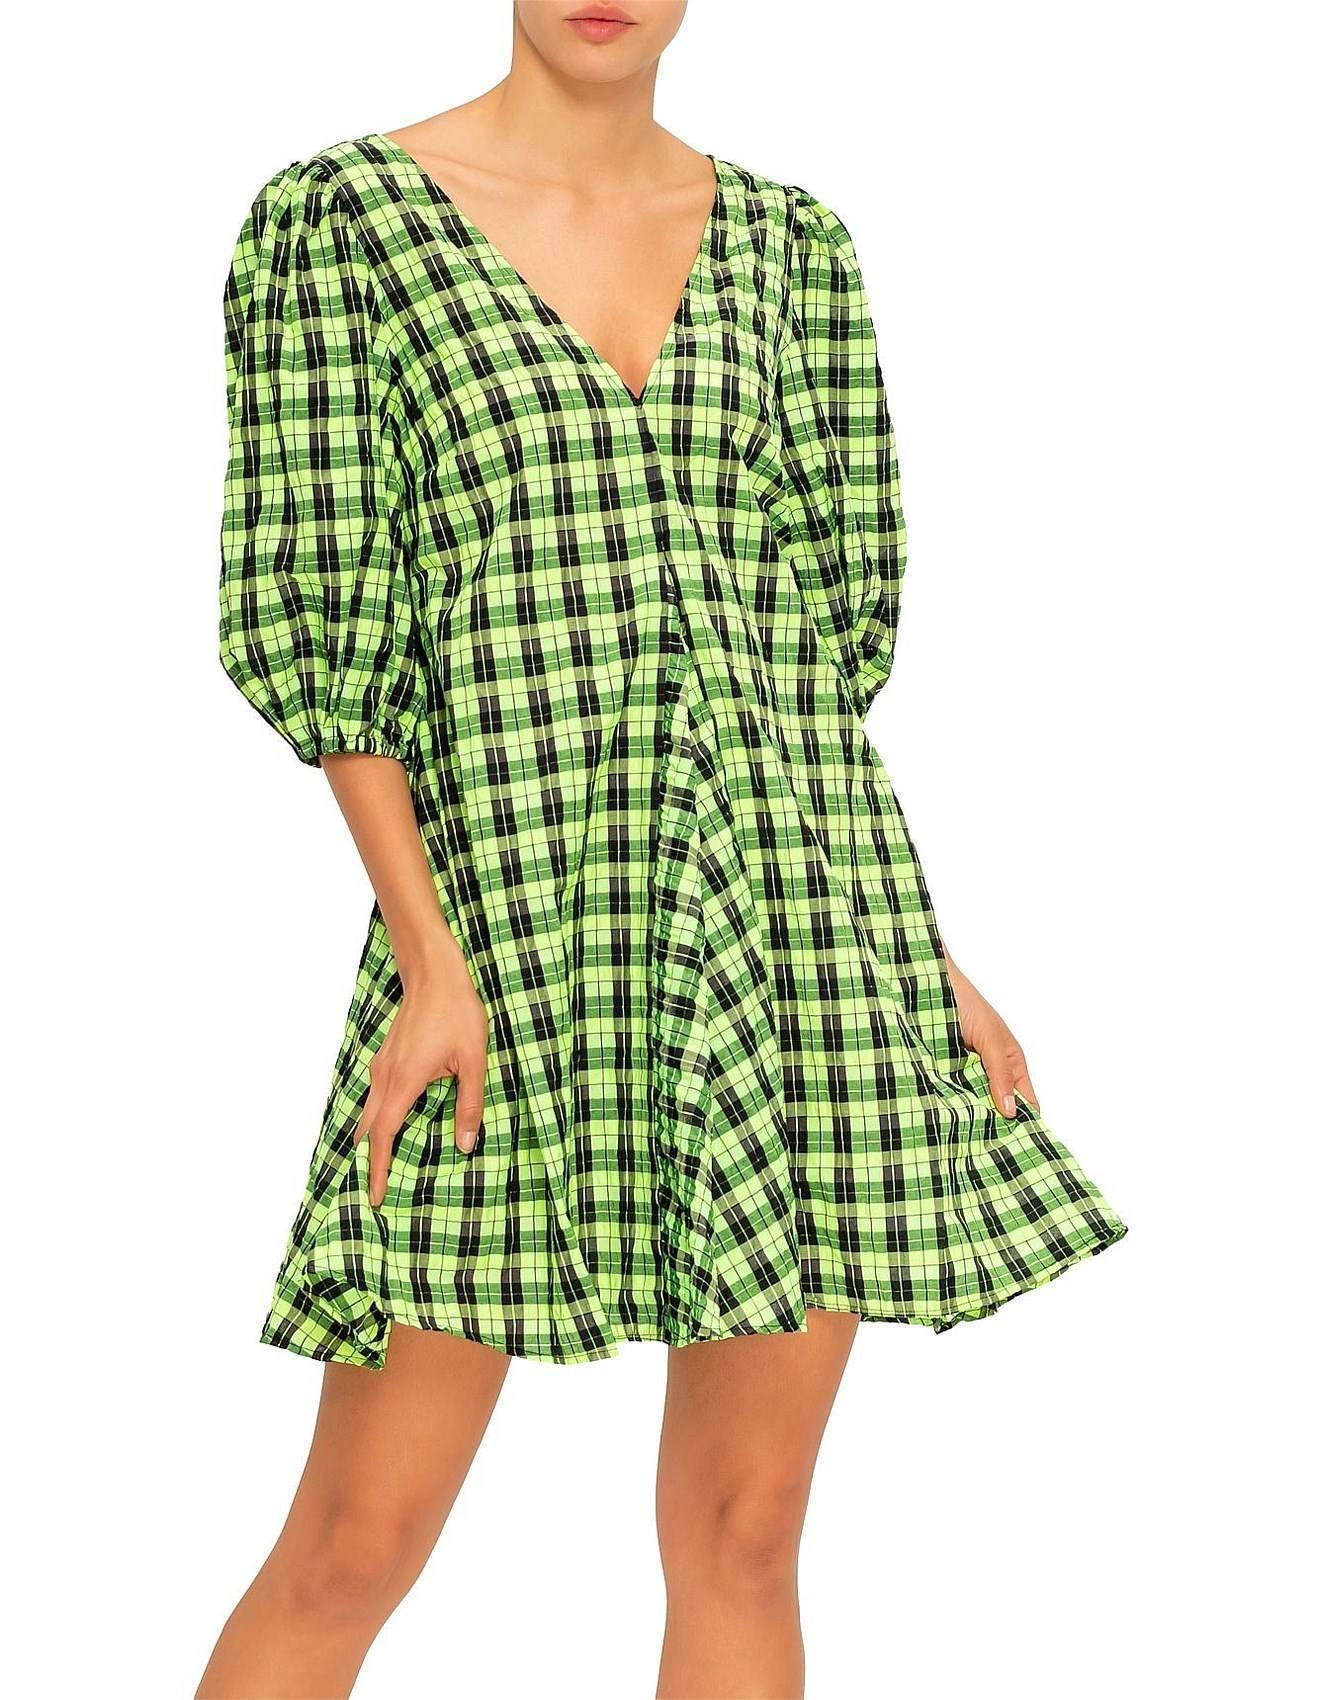 Ganni Checked Seersucker Mini Dress Size 10 The Volte